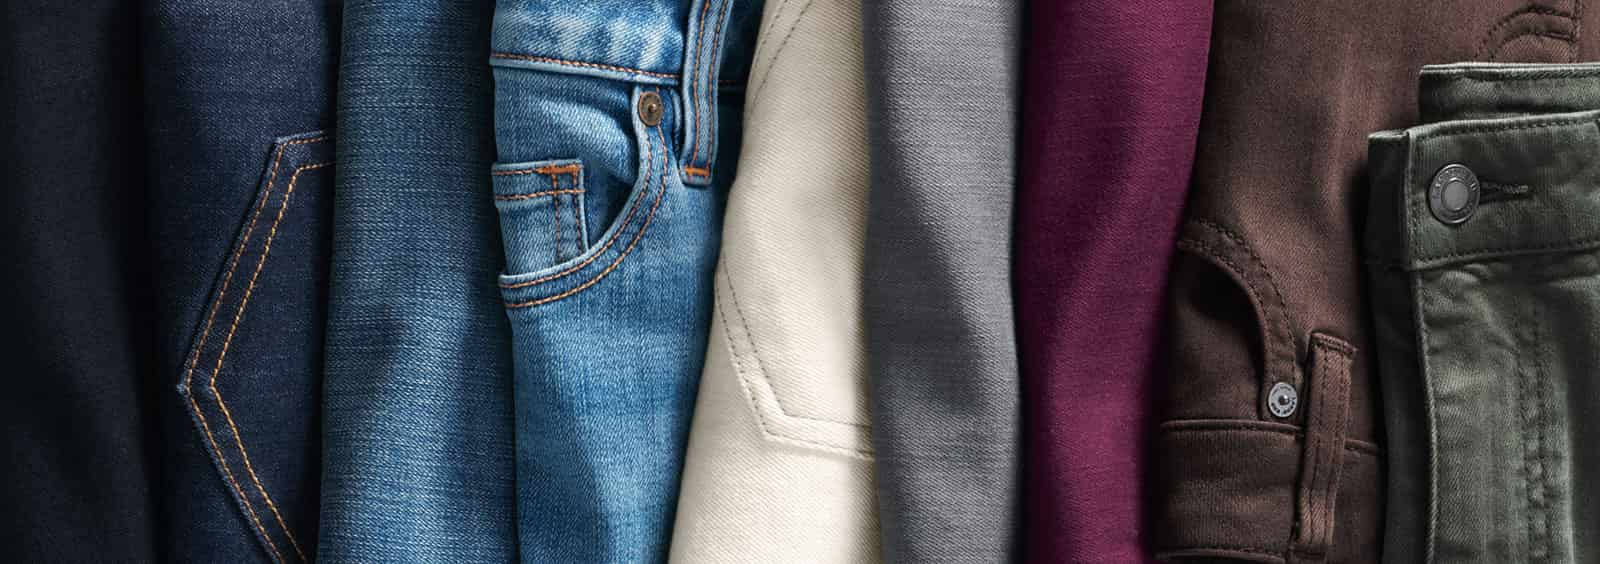 What Jean Style Is Right for You? | Lands' End